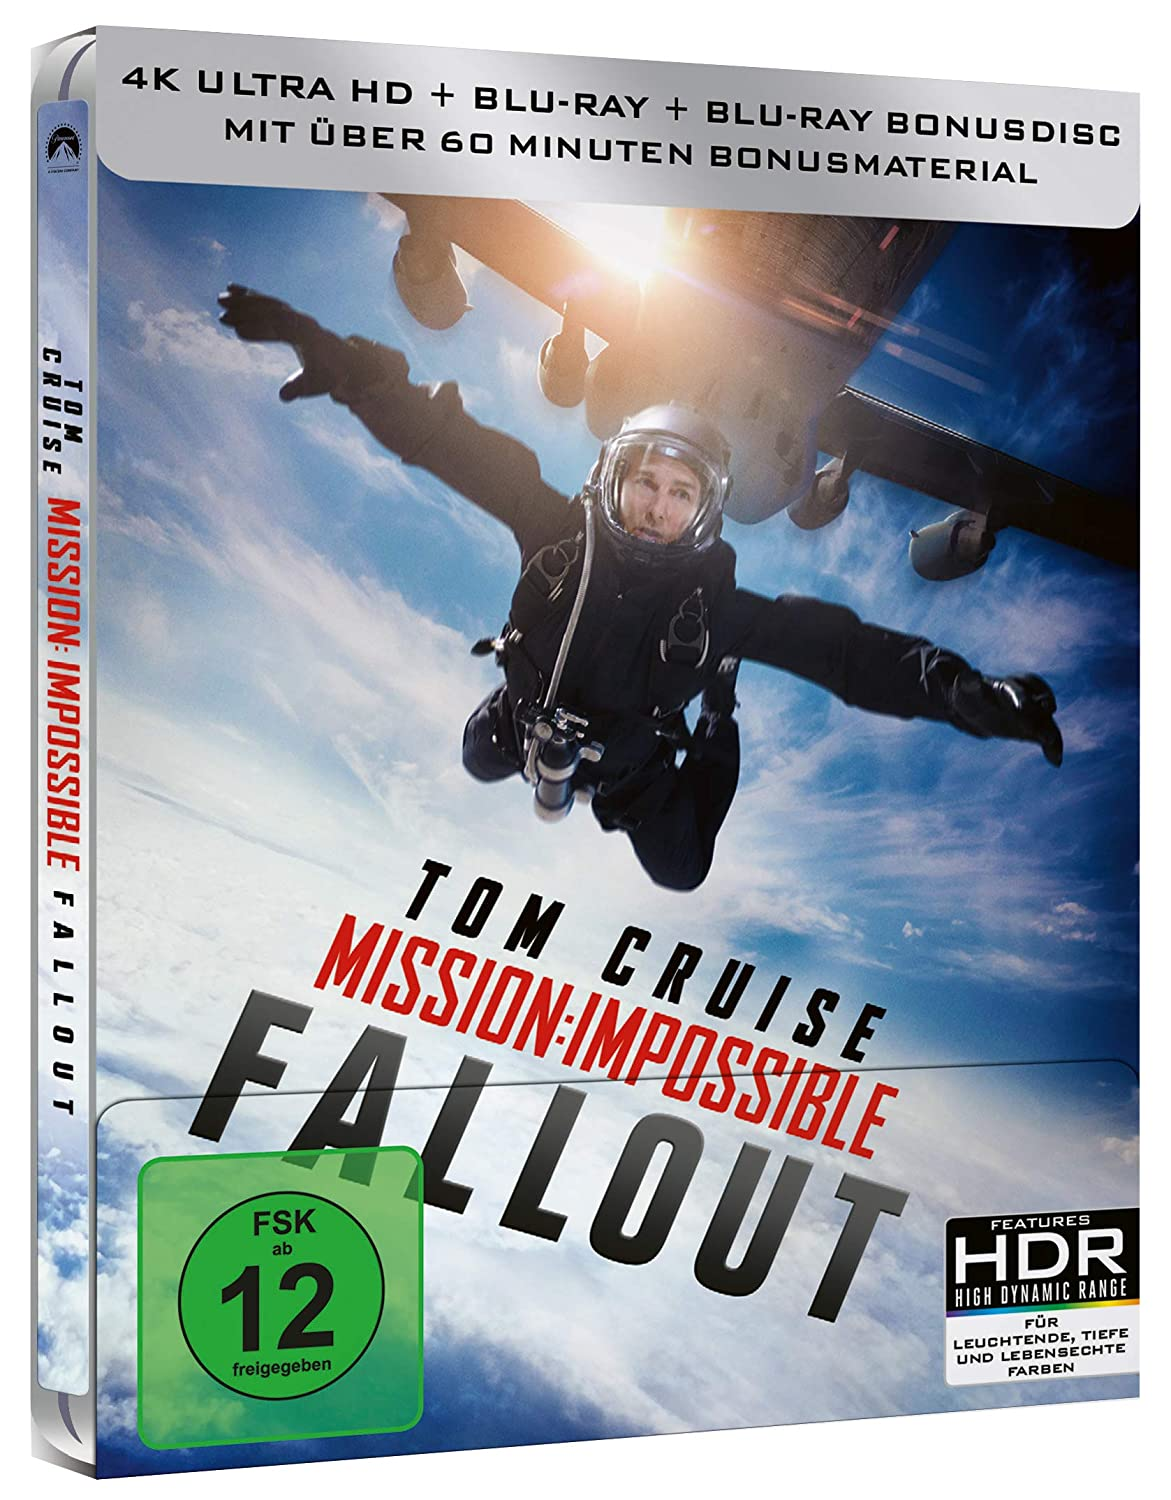 Mission: Impossible 6 - Fallout - 4K Steelbook (UHD + Blu-ray Disc)